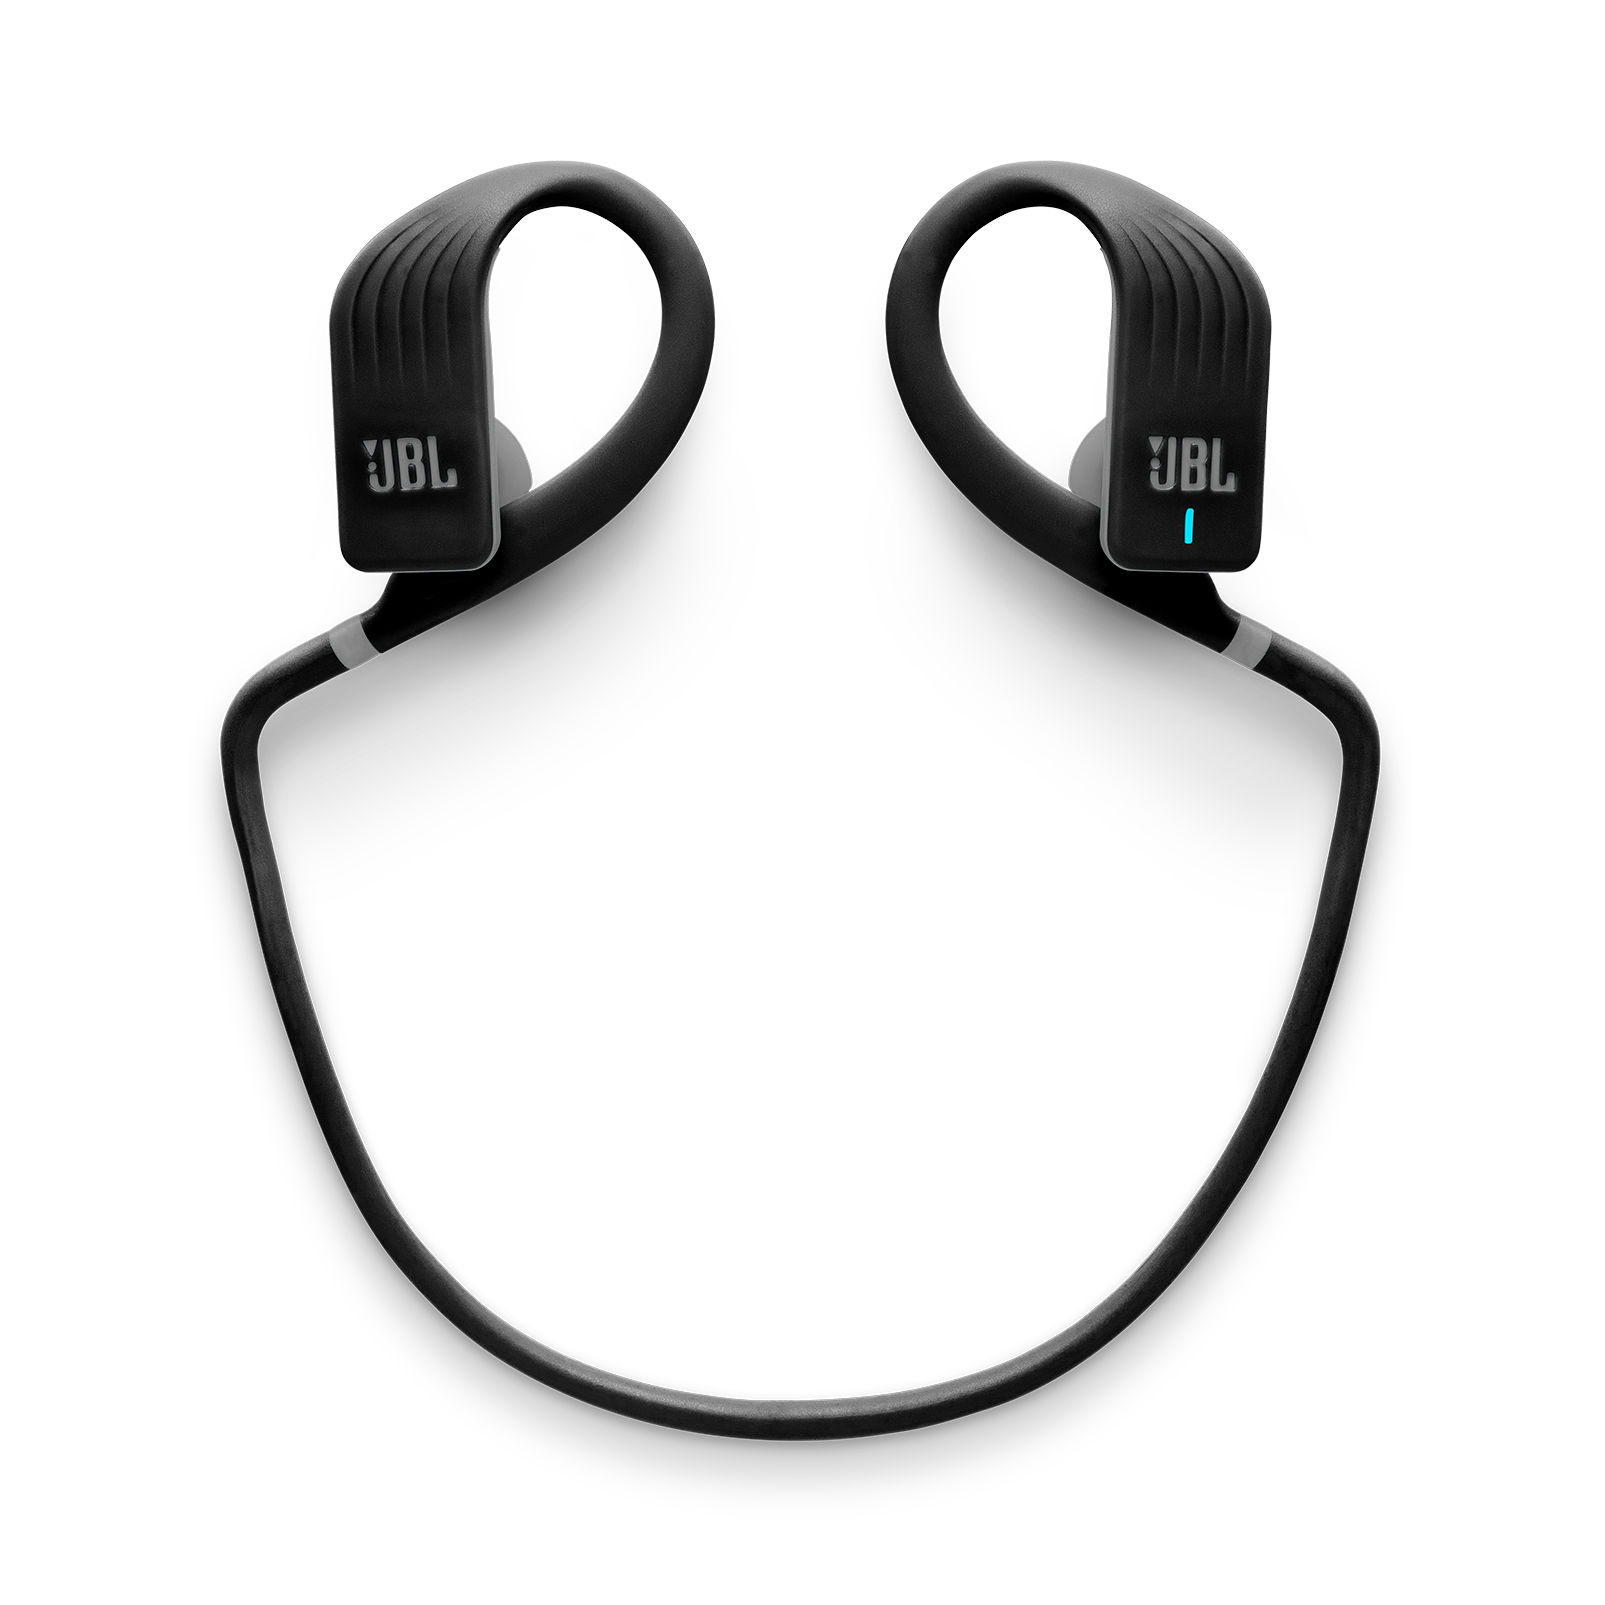 JBL Endurance JUMP - Black - Waterproof Wireless Sport In-Ear Headphones - Detailshot 2